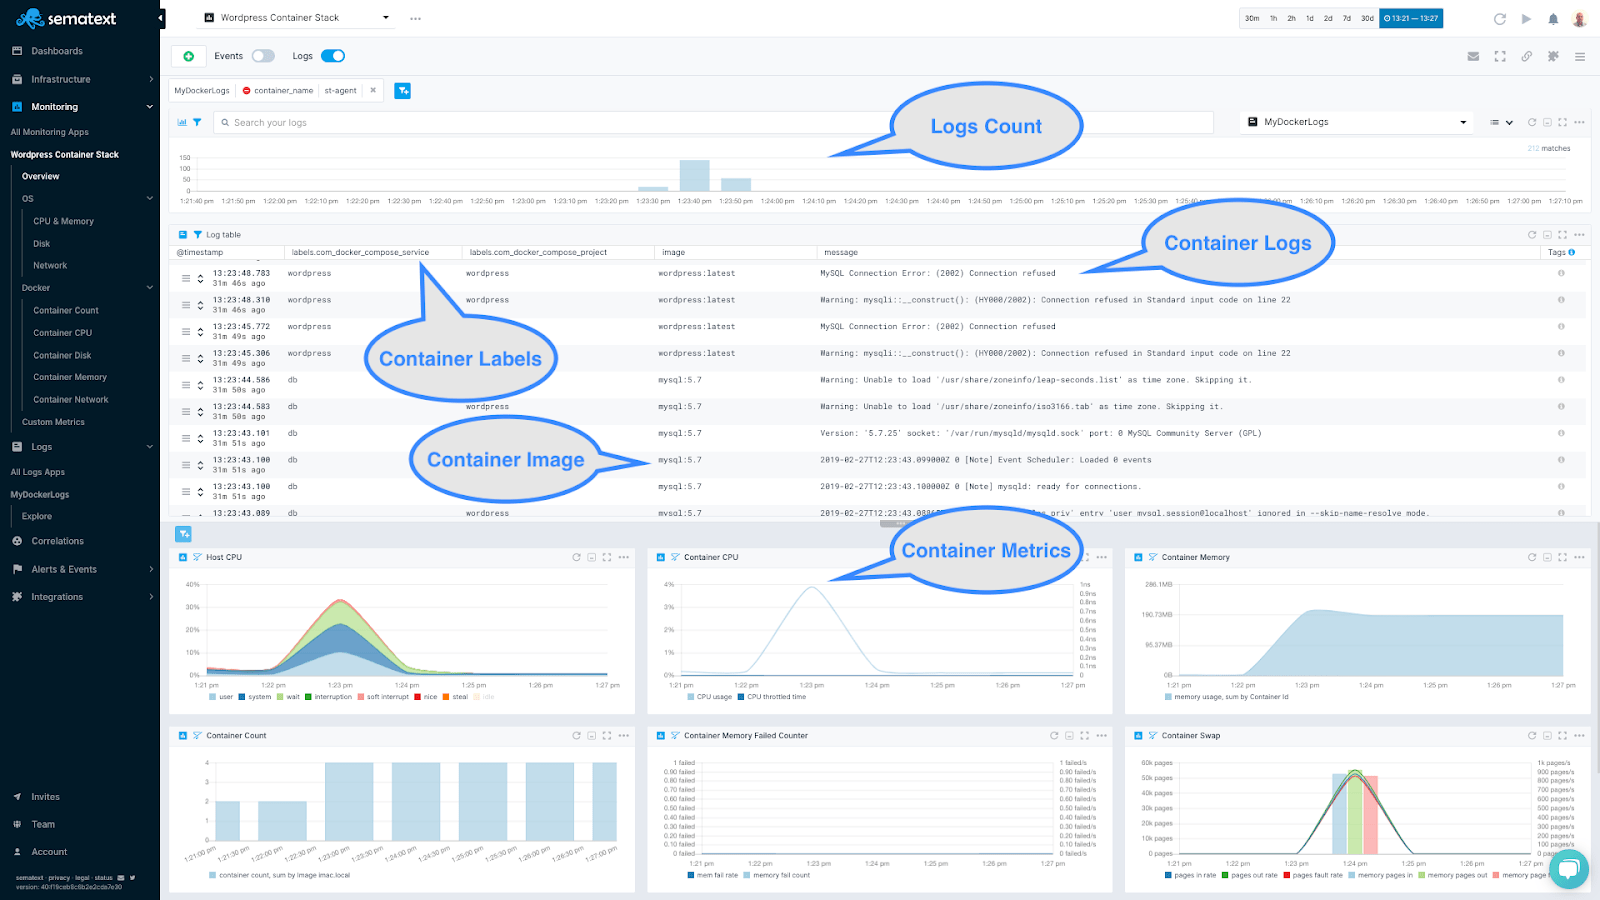 Container logs and metrics in a single view